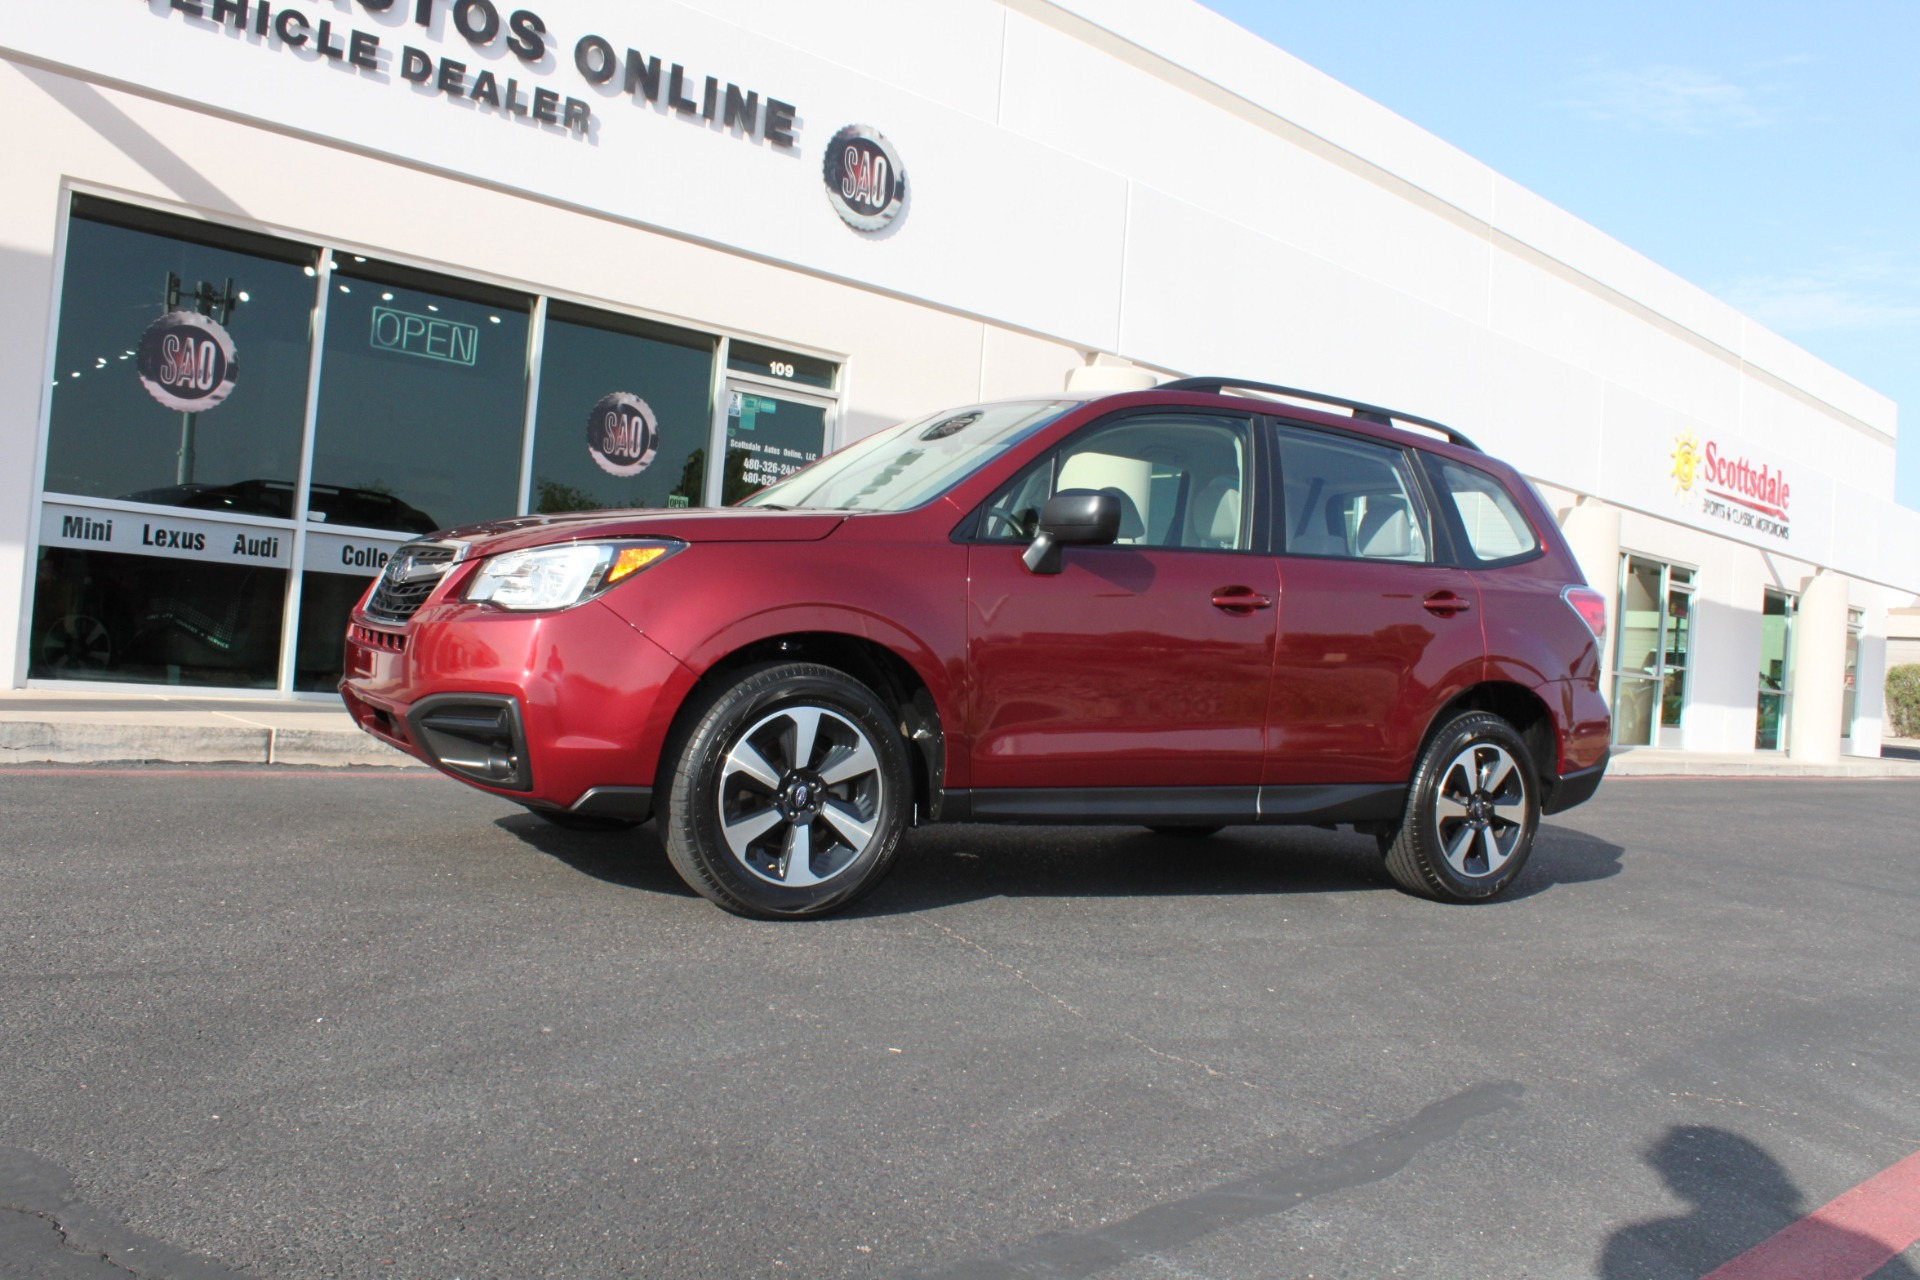 Used-2017-Subaru-Forester-25i-All-Wheel-Drive-Grand-Cherokee